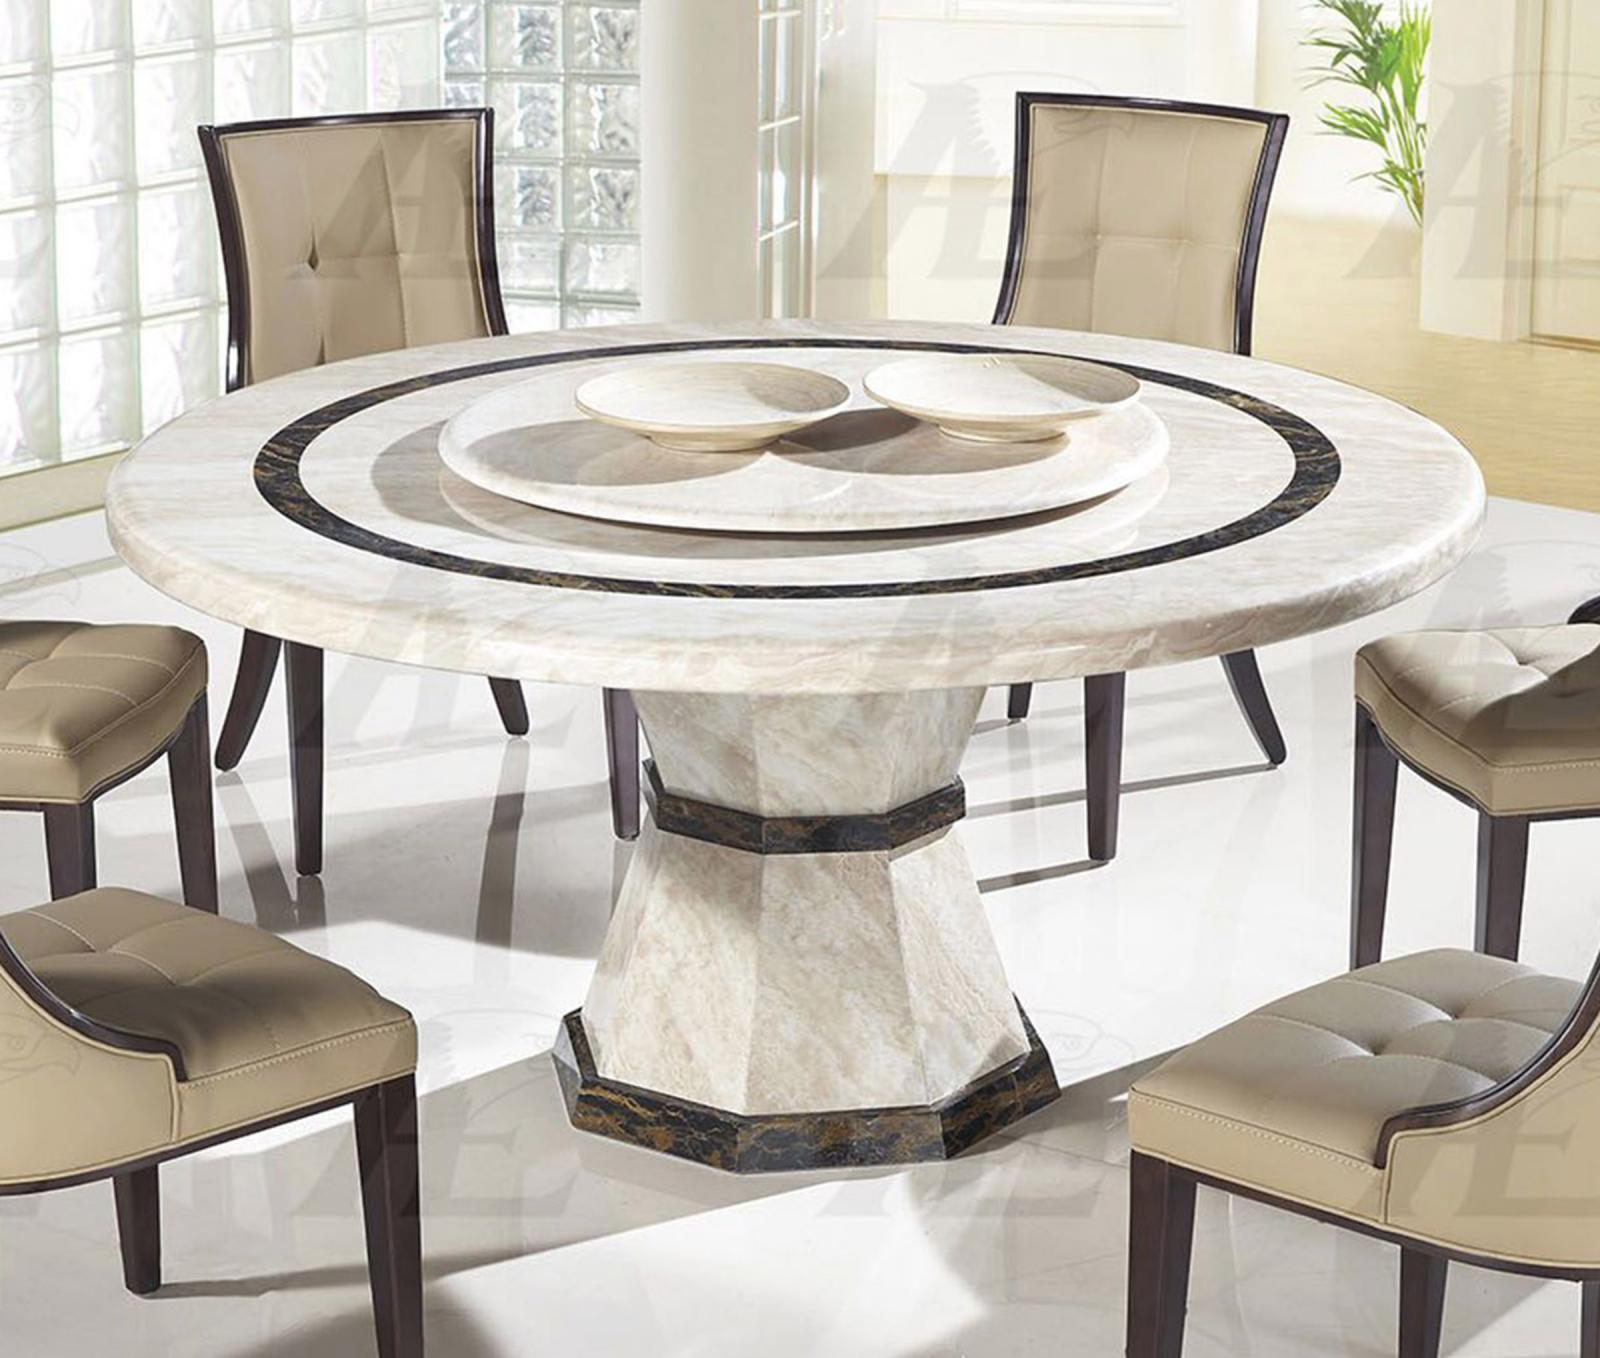 Round Marble Top Dining Table American Eagle Dt H38 Beige Marble Top Round Dining Table